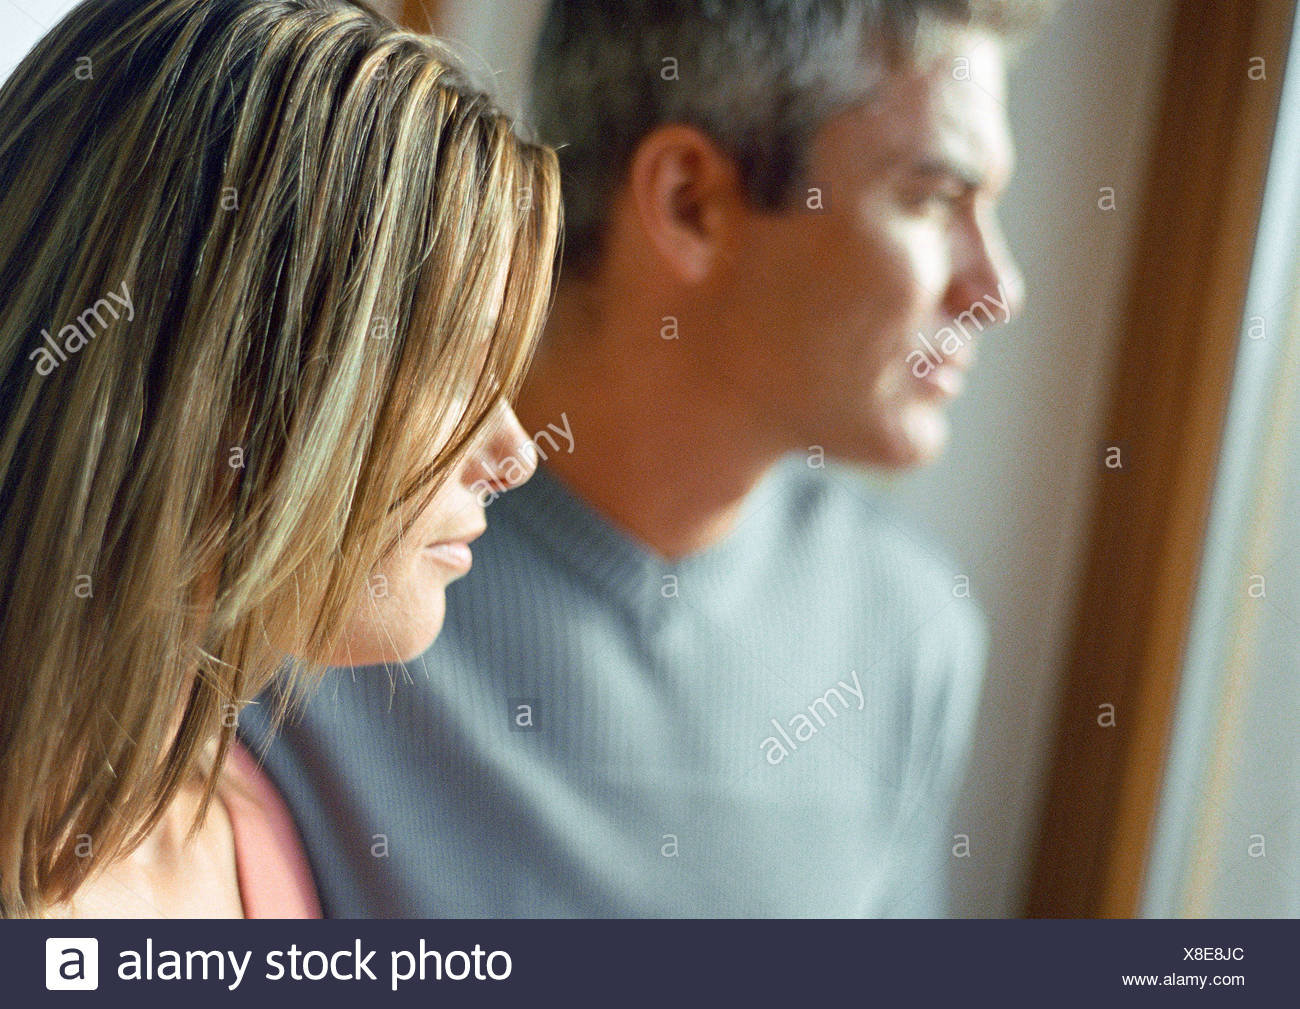 Man and woman, side view, head and shoulders, natural light on faces, close-up - Stock Image